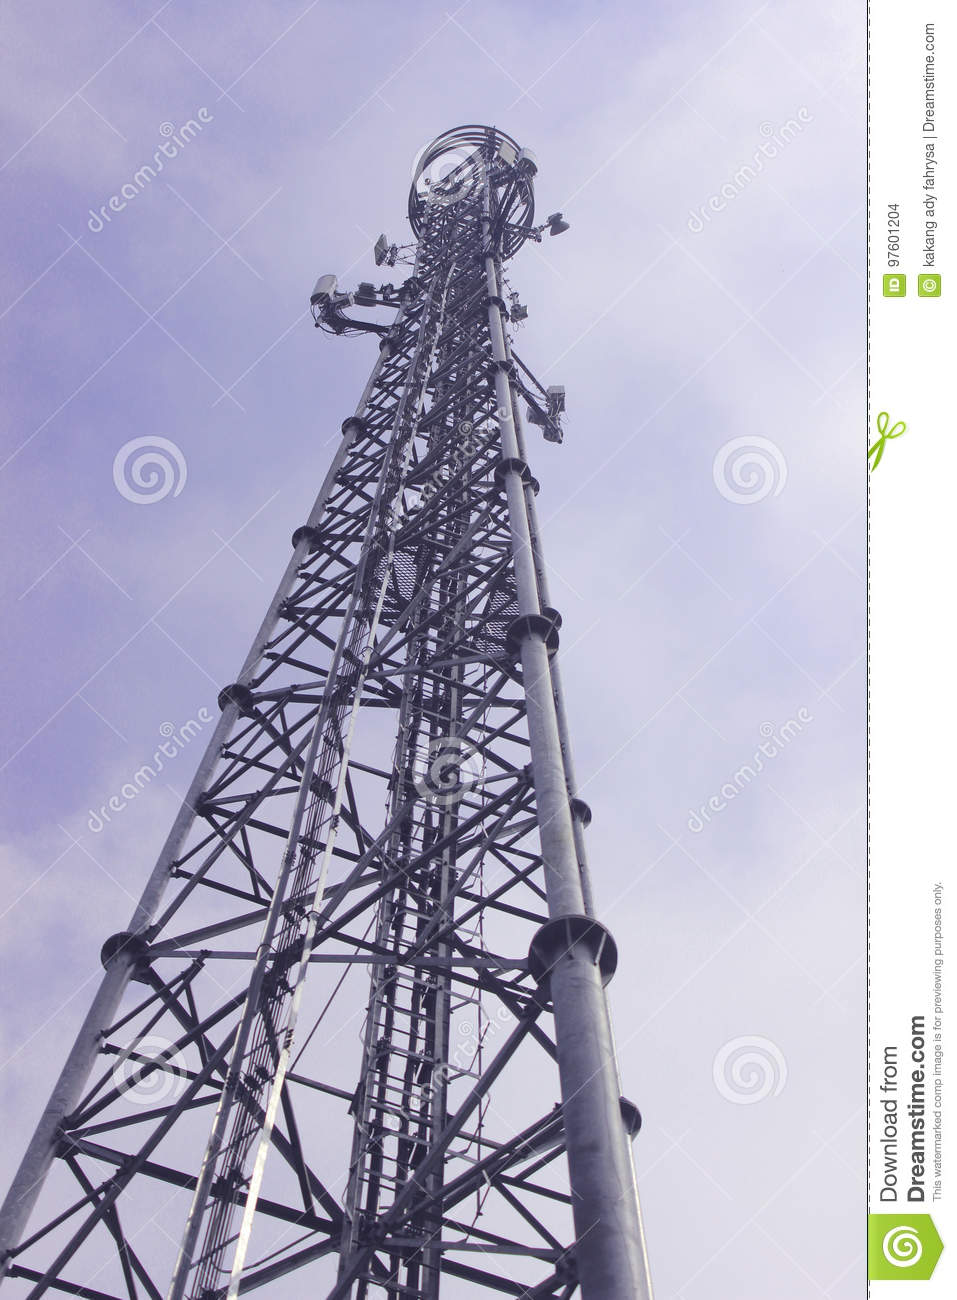 Tower signal stock photo. Image of towers, frequency - 97601204